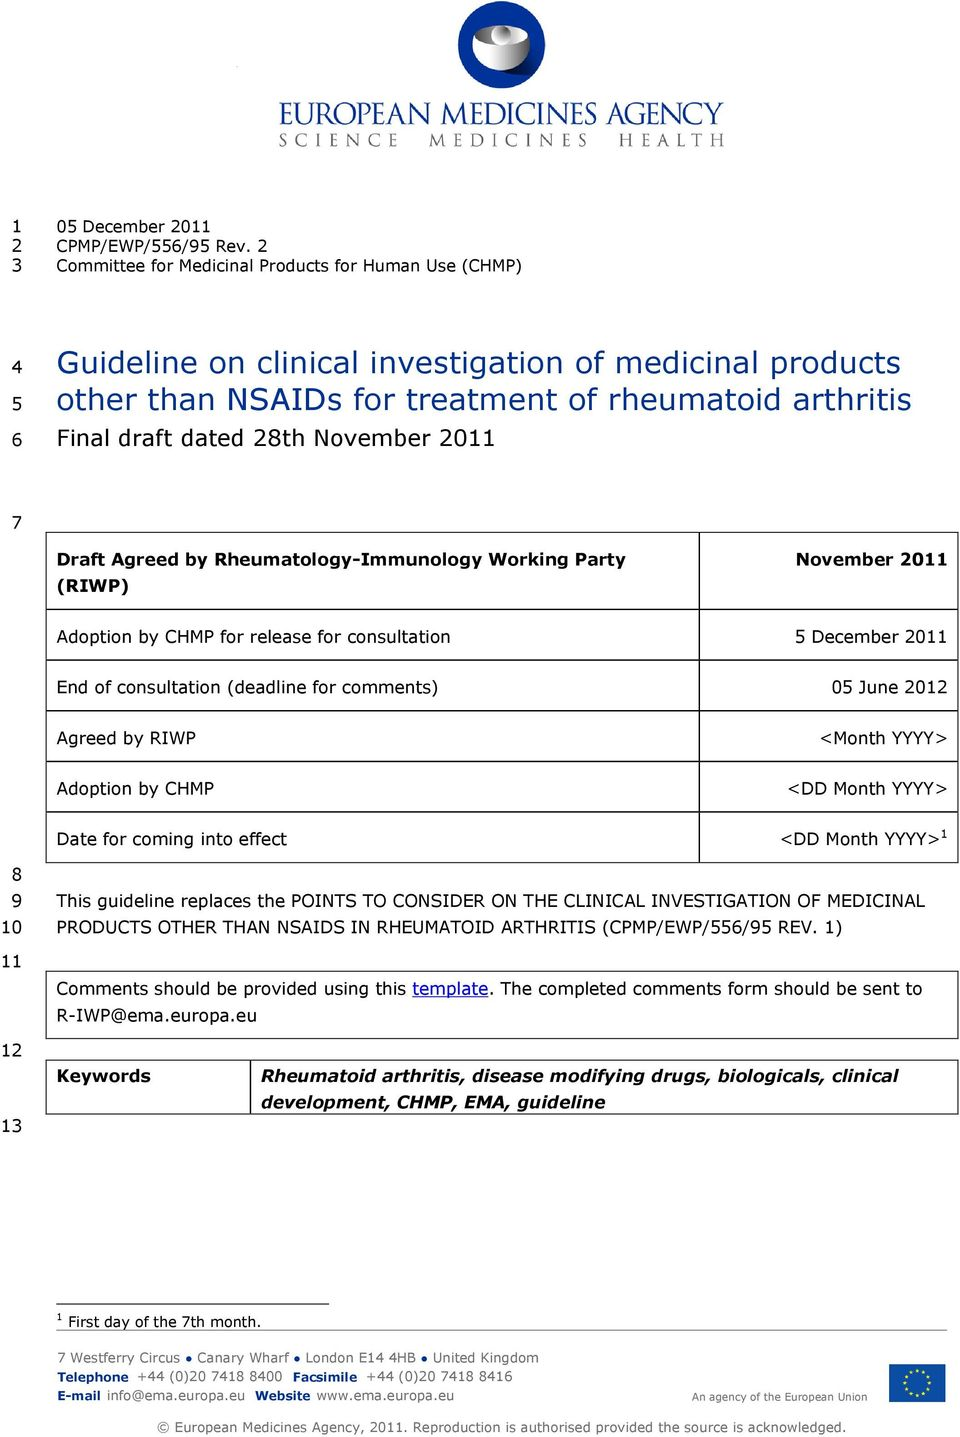 (deadline for comments) 05 June 2012 Agreed by RIWP <Month YYYY> Adoption by CHMP <DD Month YYYY> Date for coming into effect <DD Month YYYY> 1 8 9 10 11 This guideline replaces the POINTS TO